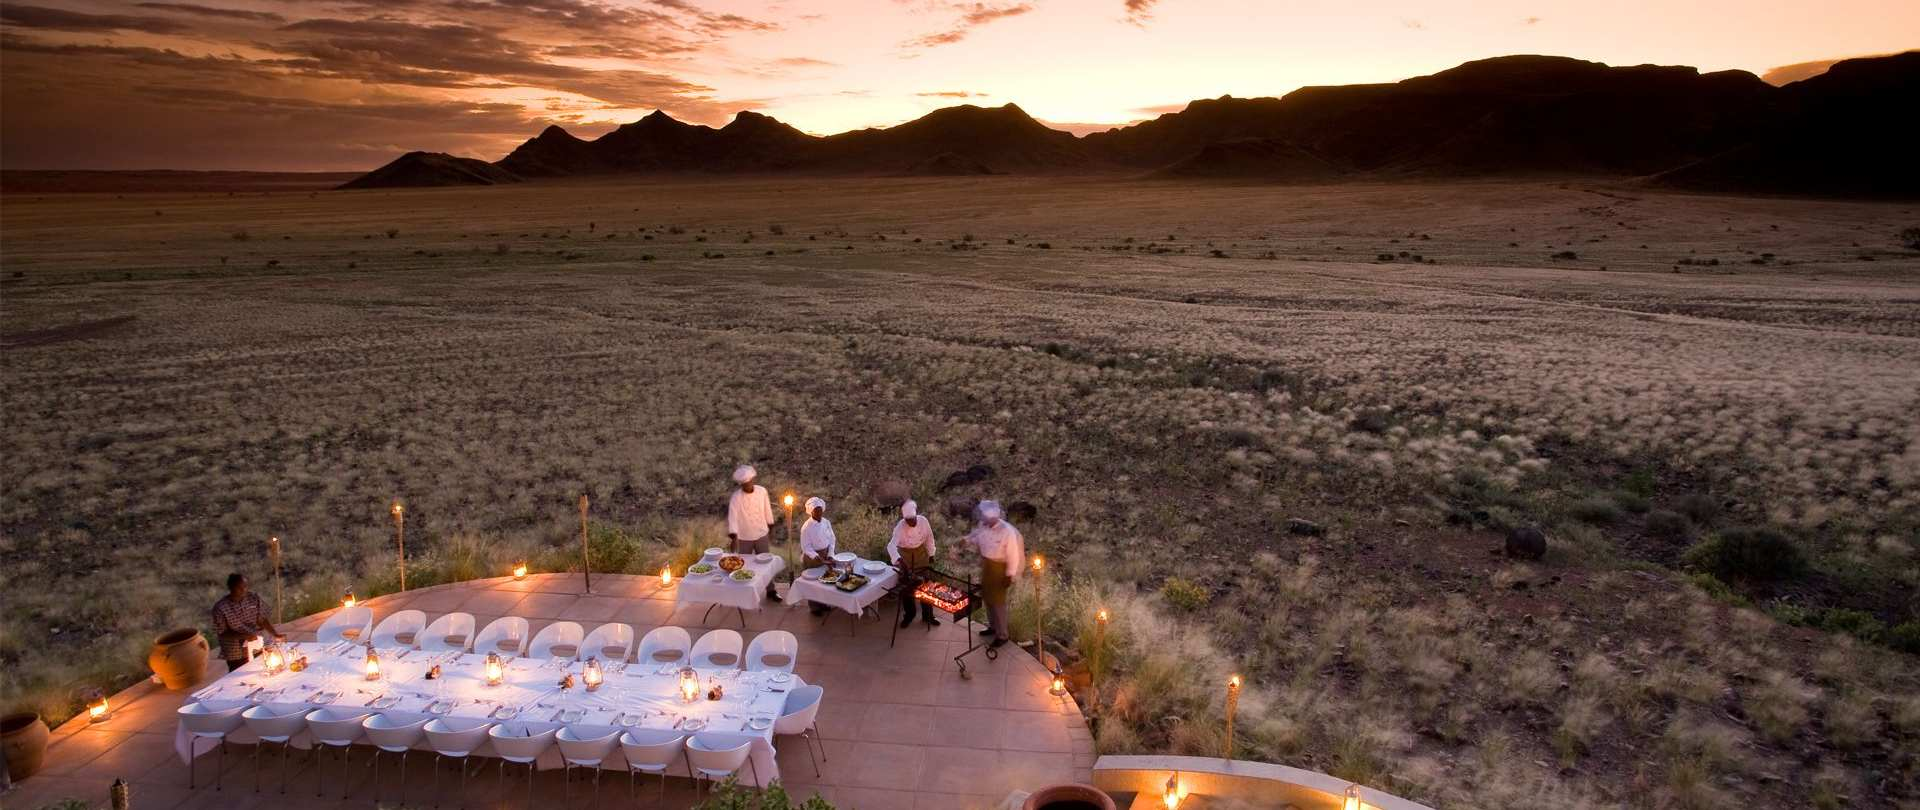 Luxury Road Tripping Through Namibia Travel Concepts : sossusvlei desert lodge group diningjpg1920x810021110000 from travelconcepts.co.za size 1920 x 810 jpeg 164kB